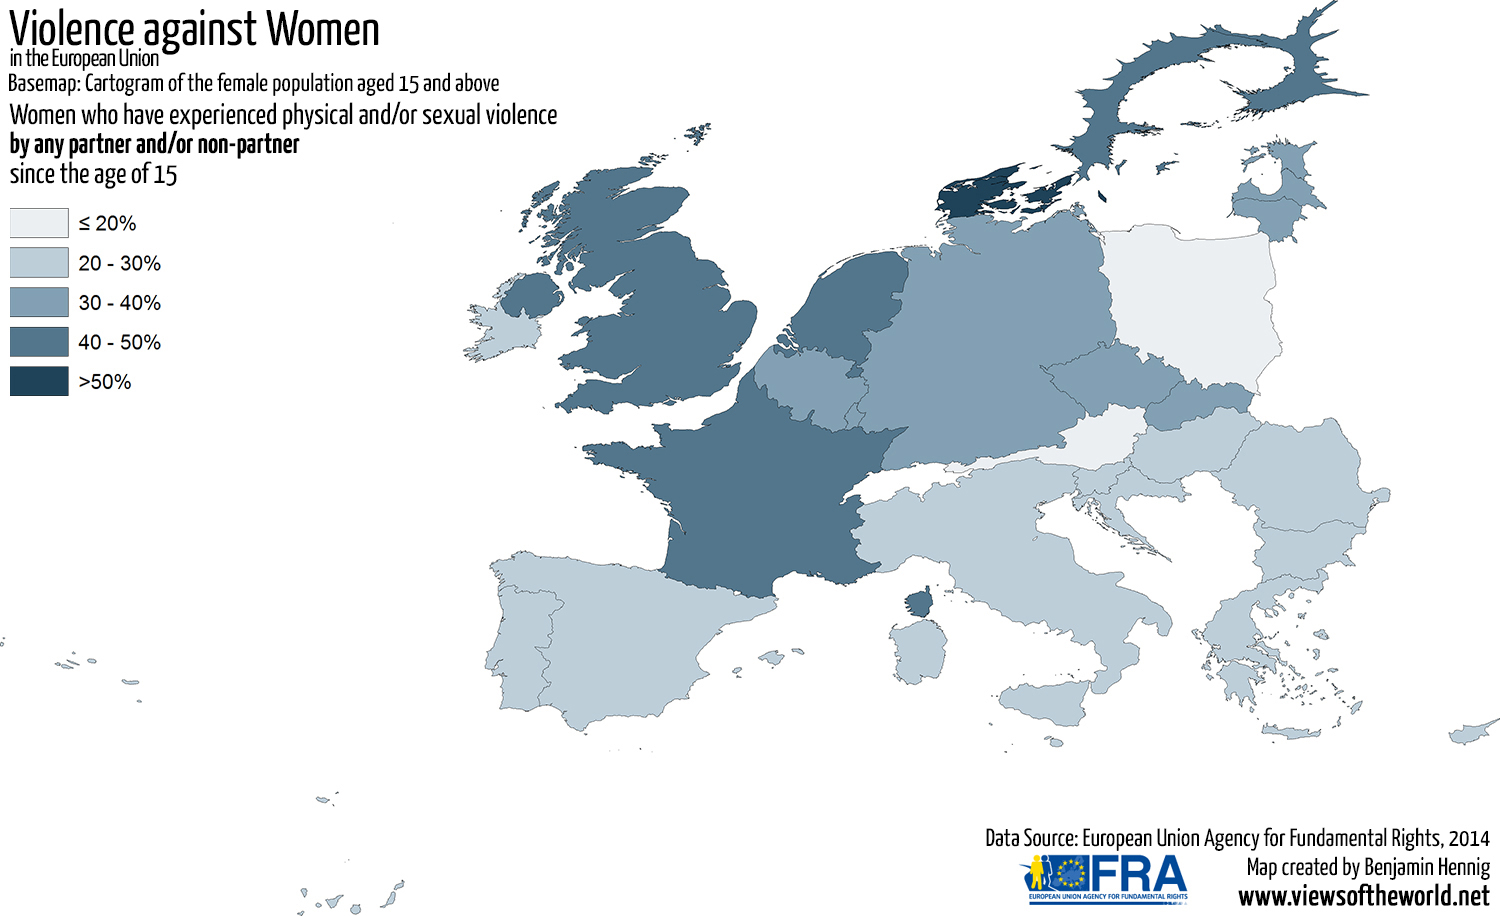 Map of Physical and Sexual Violence against Women in the European Union